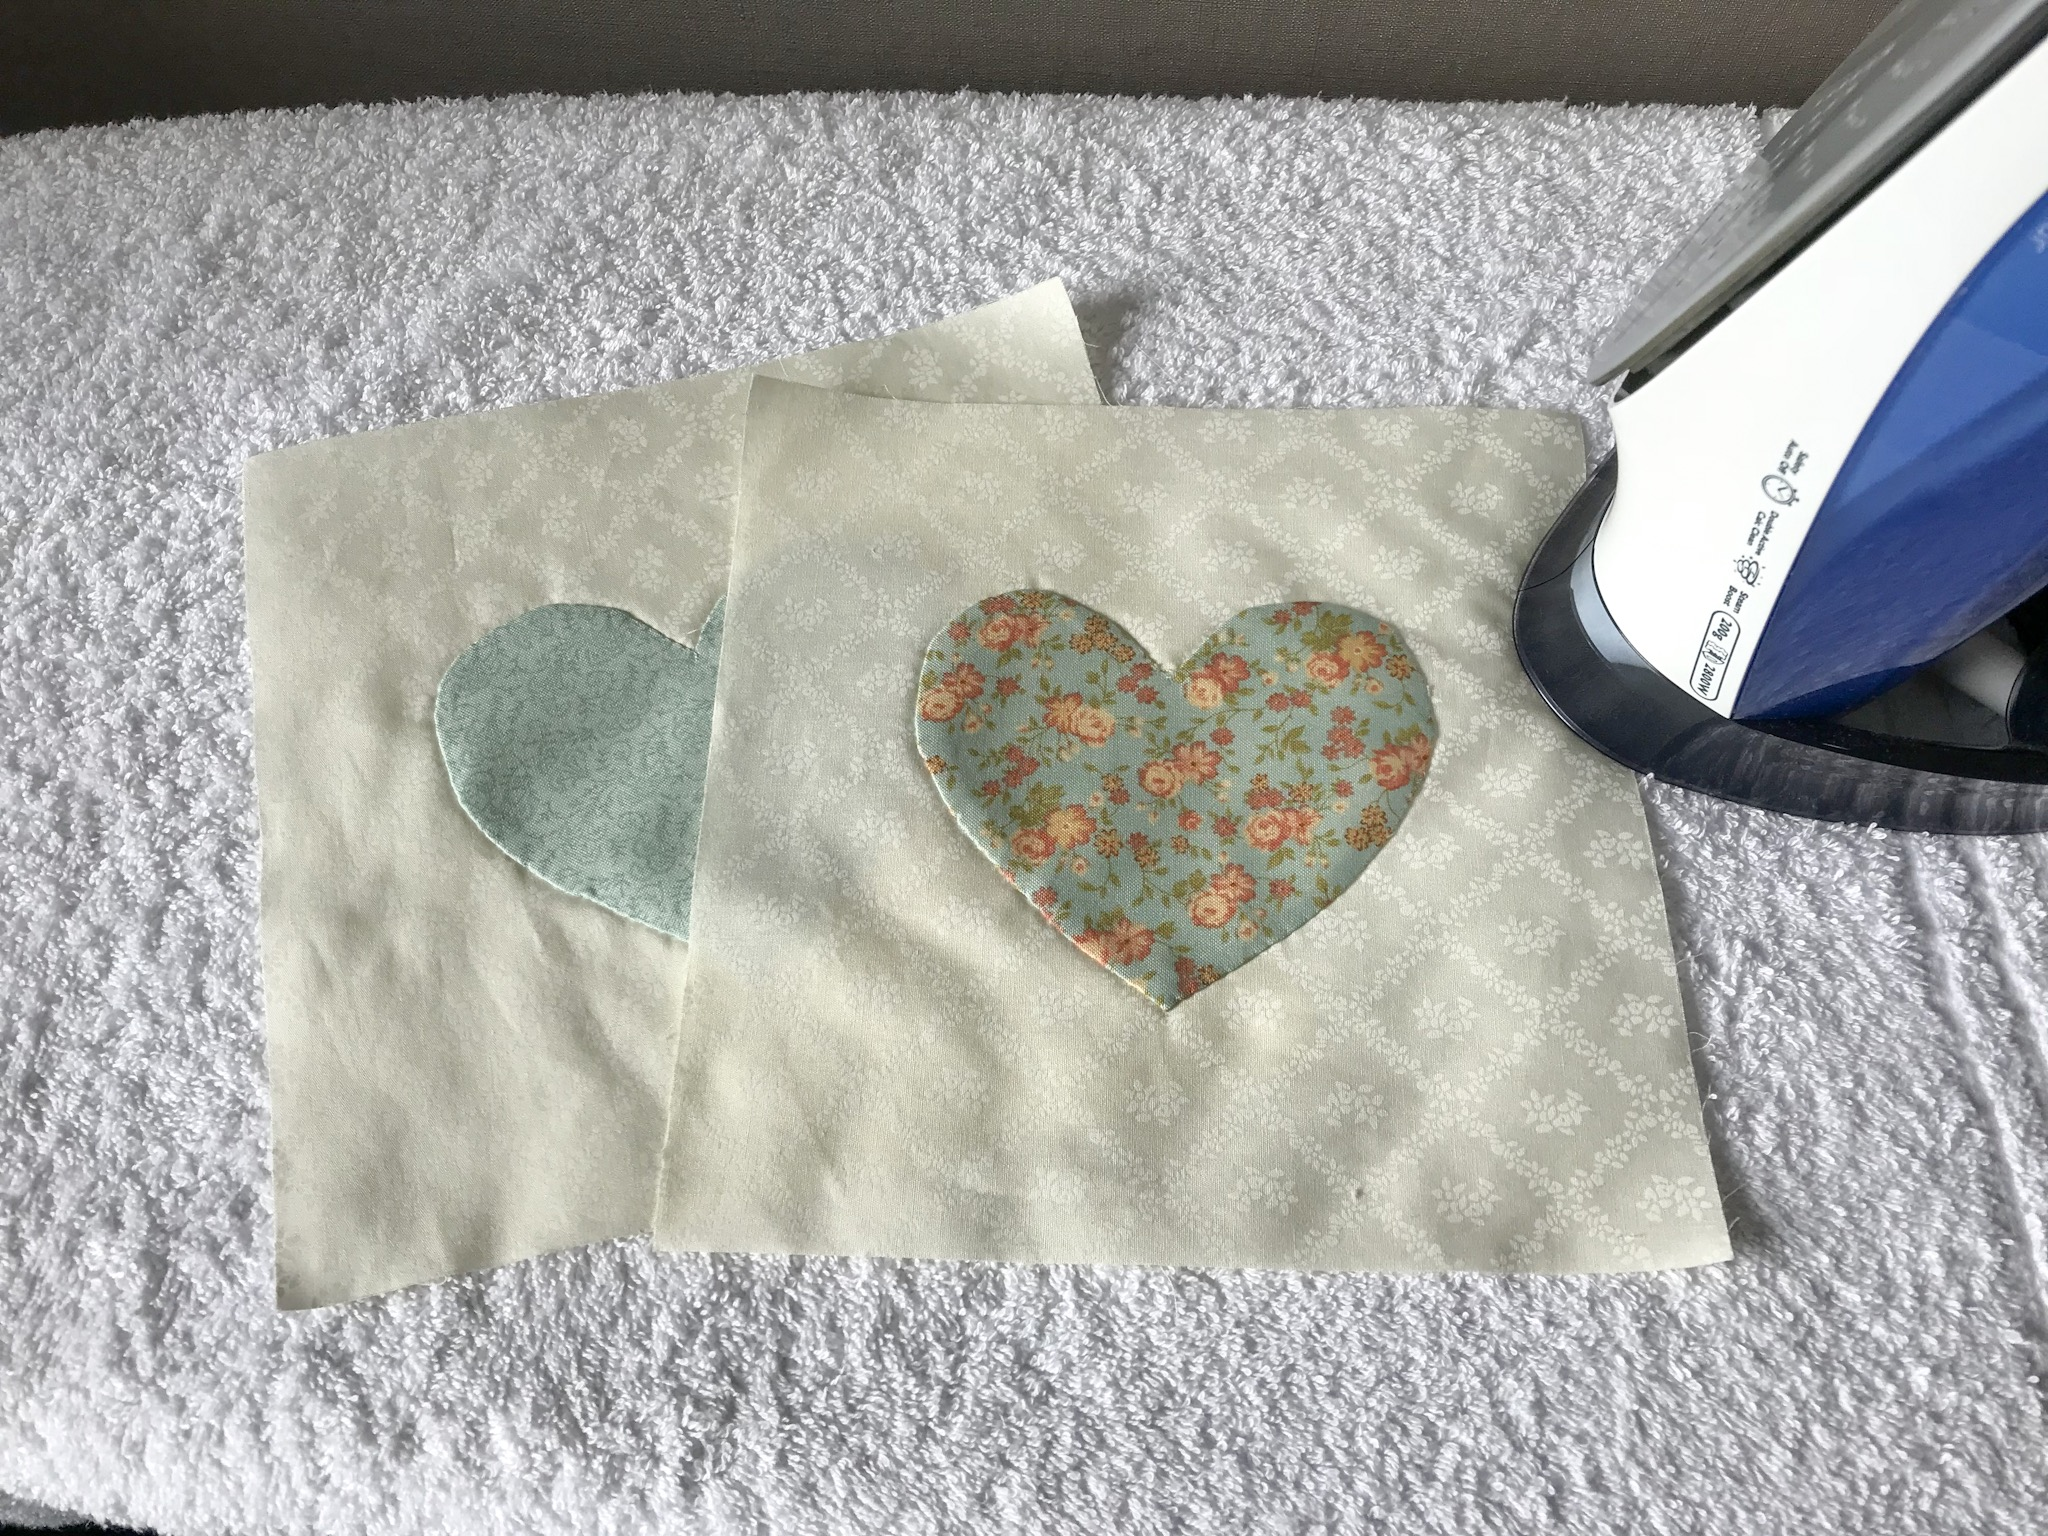 Heart applique memorial quilt